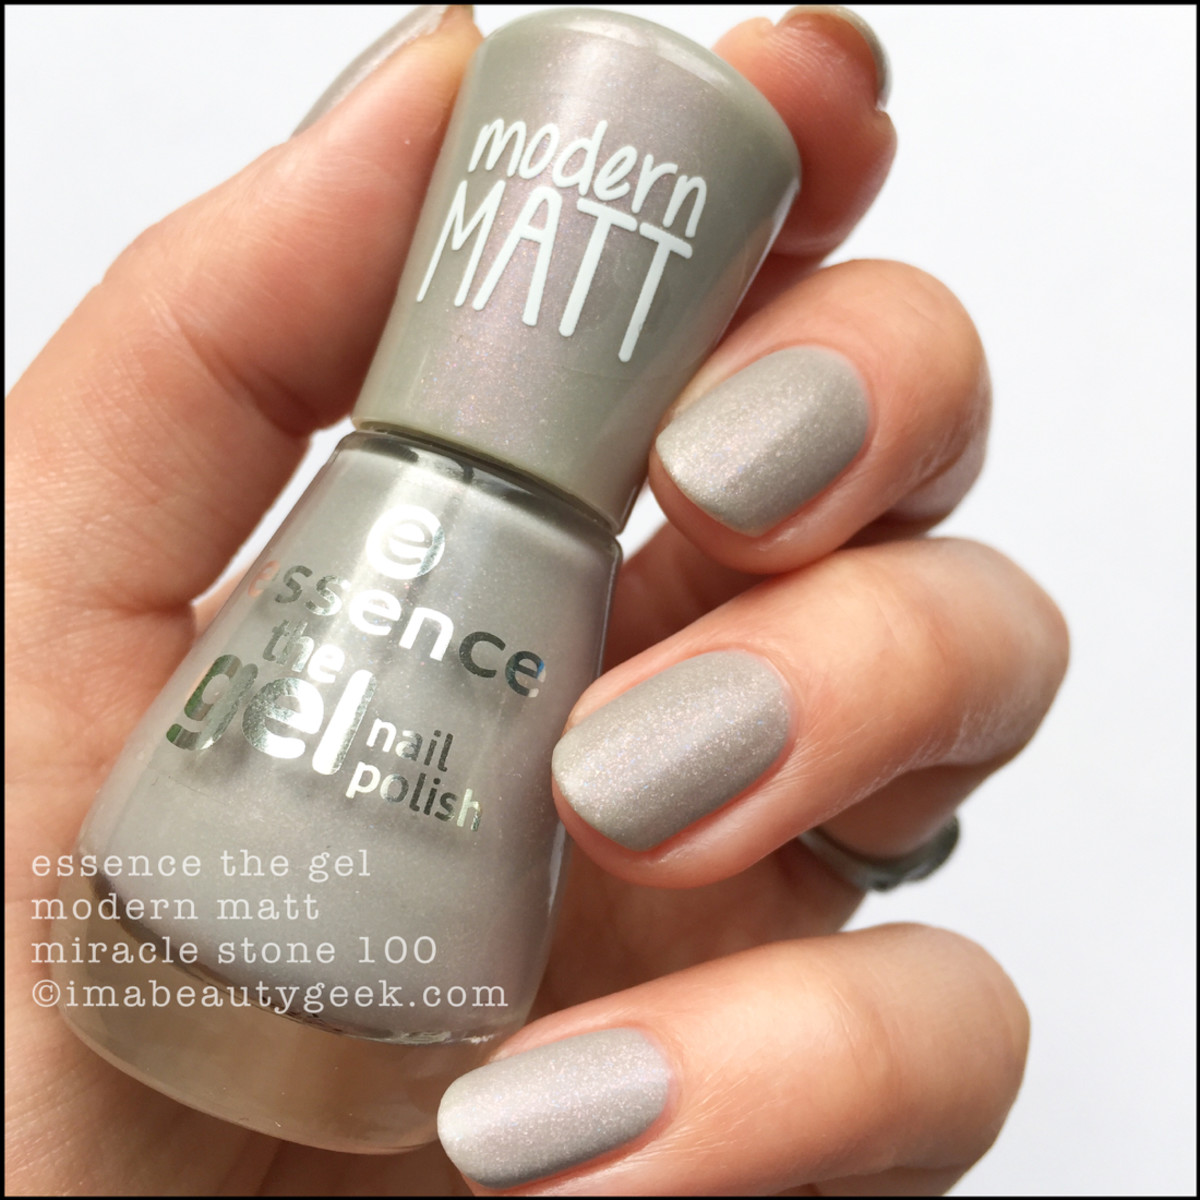 Essence Modern Matt Miracle Stone 100 Nail Polish